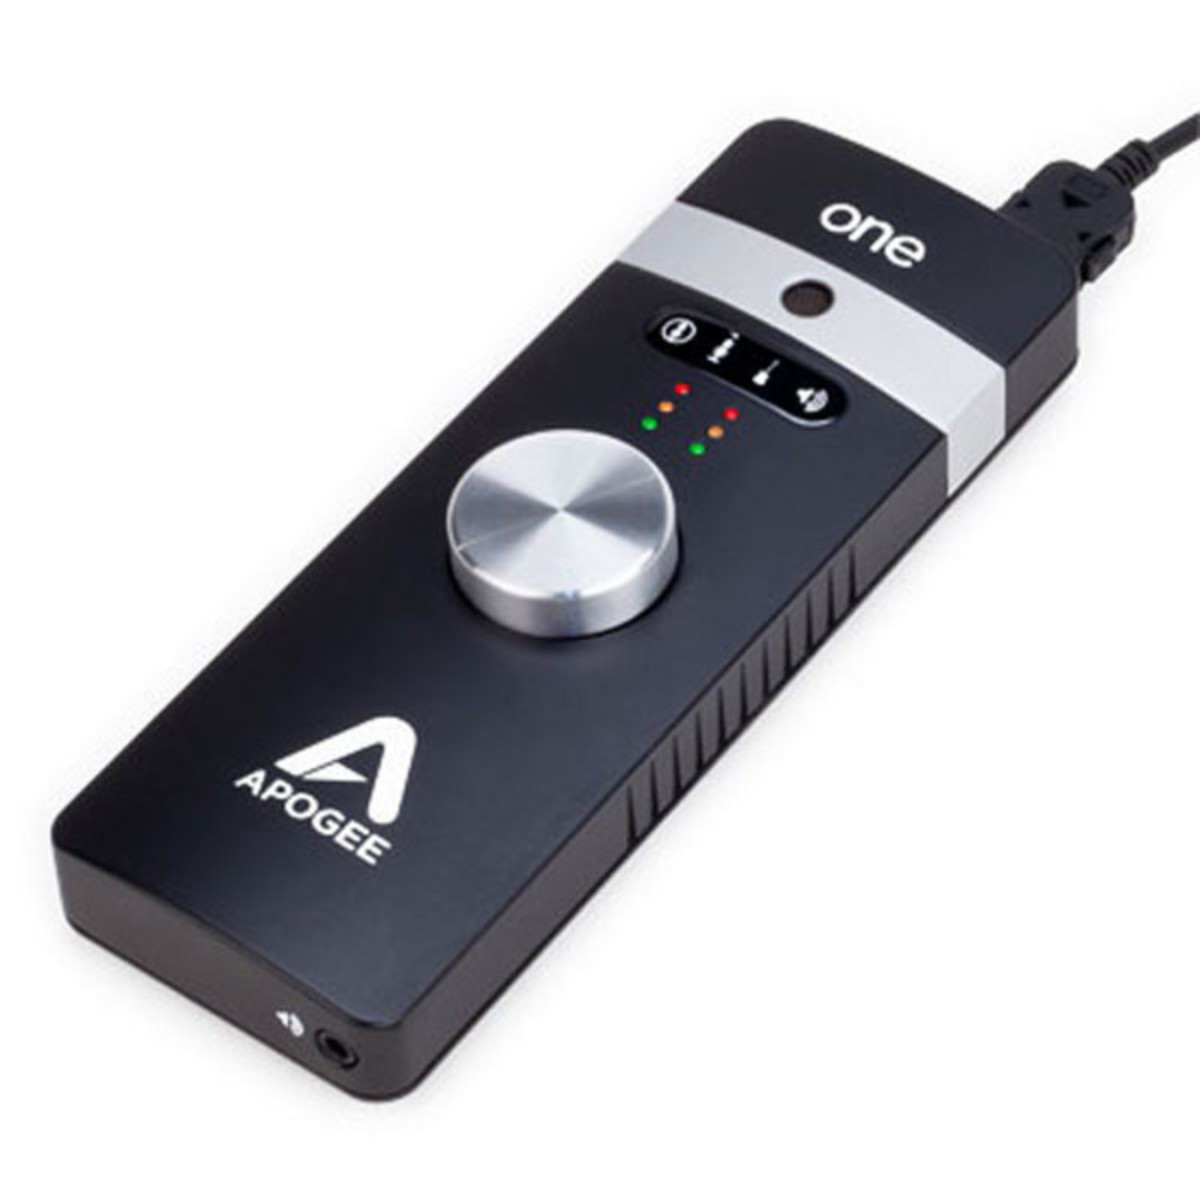 apogee one usb mic and audio interface for ipad and mac box opened at gear4music. Black Bedroom Furniture Sets. Home Design Ideas